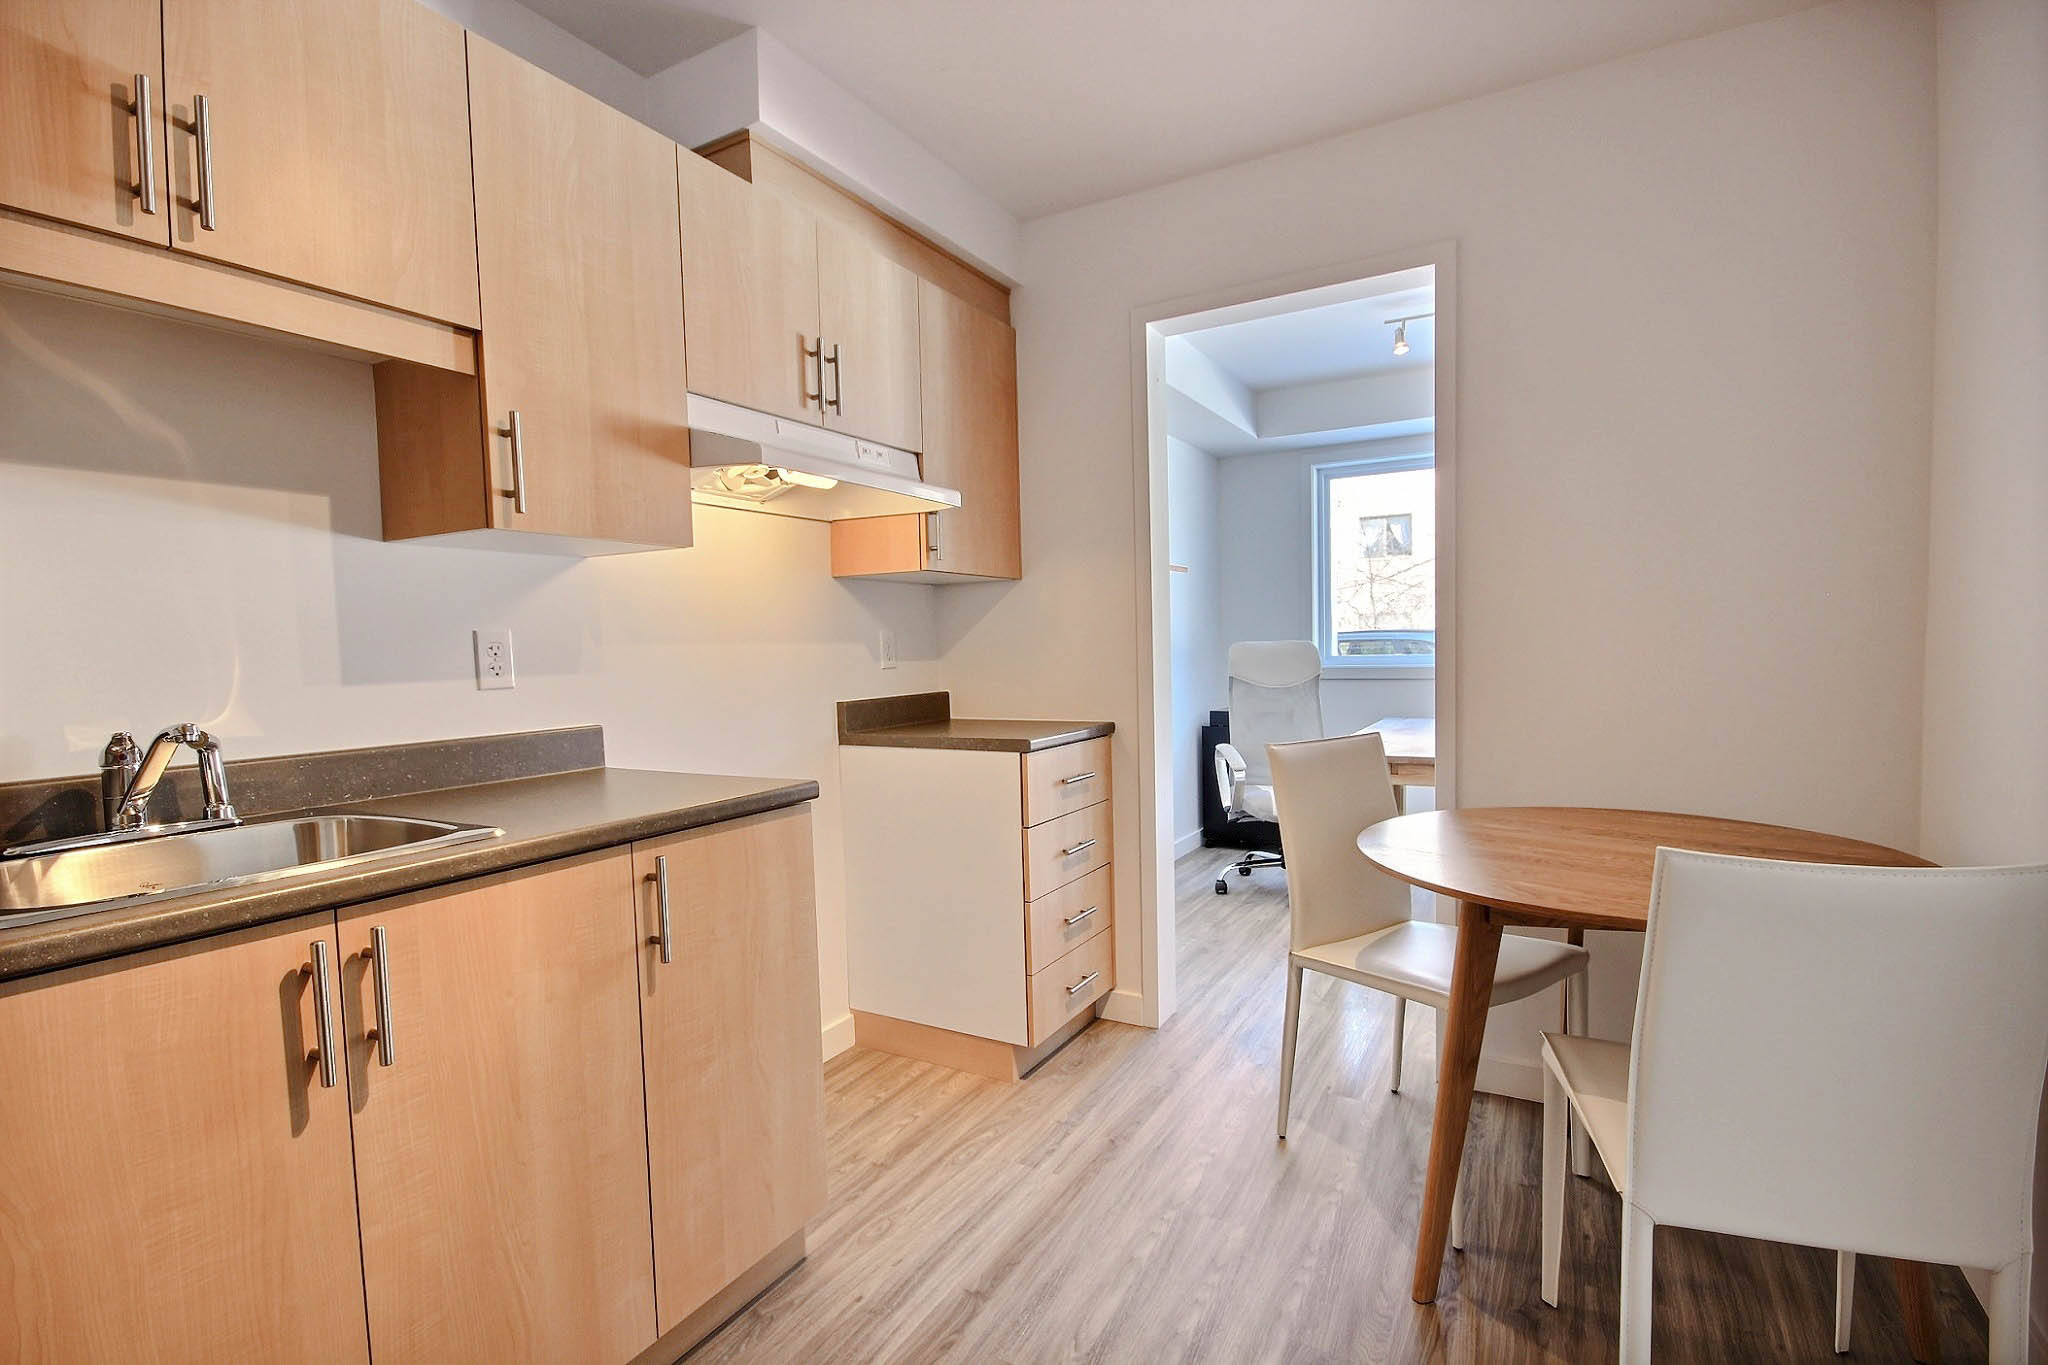 1 bedroom Apartments for rent in Saint Lambert at Projets Preville 2 - Photo 07 - RentQuebecApartments – L6181